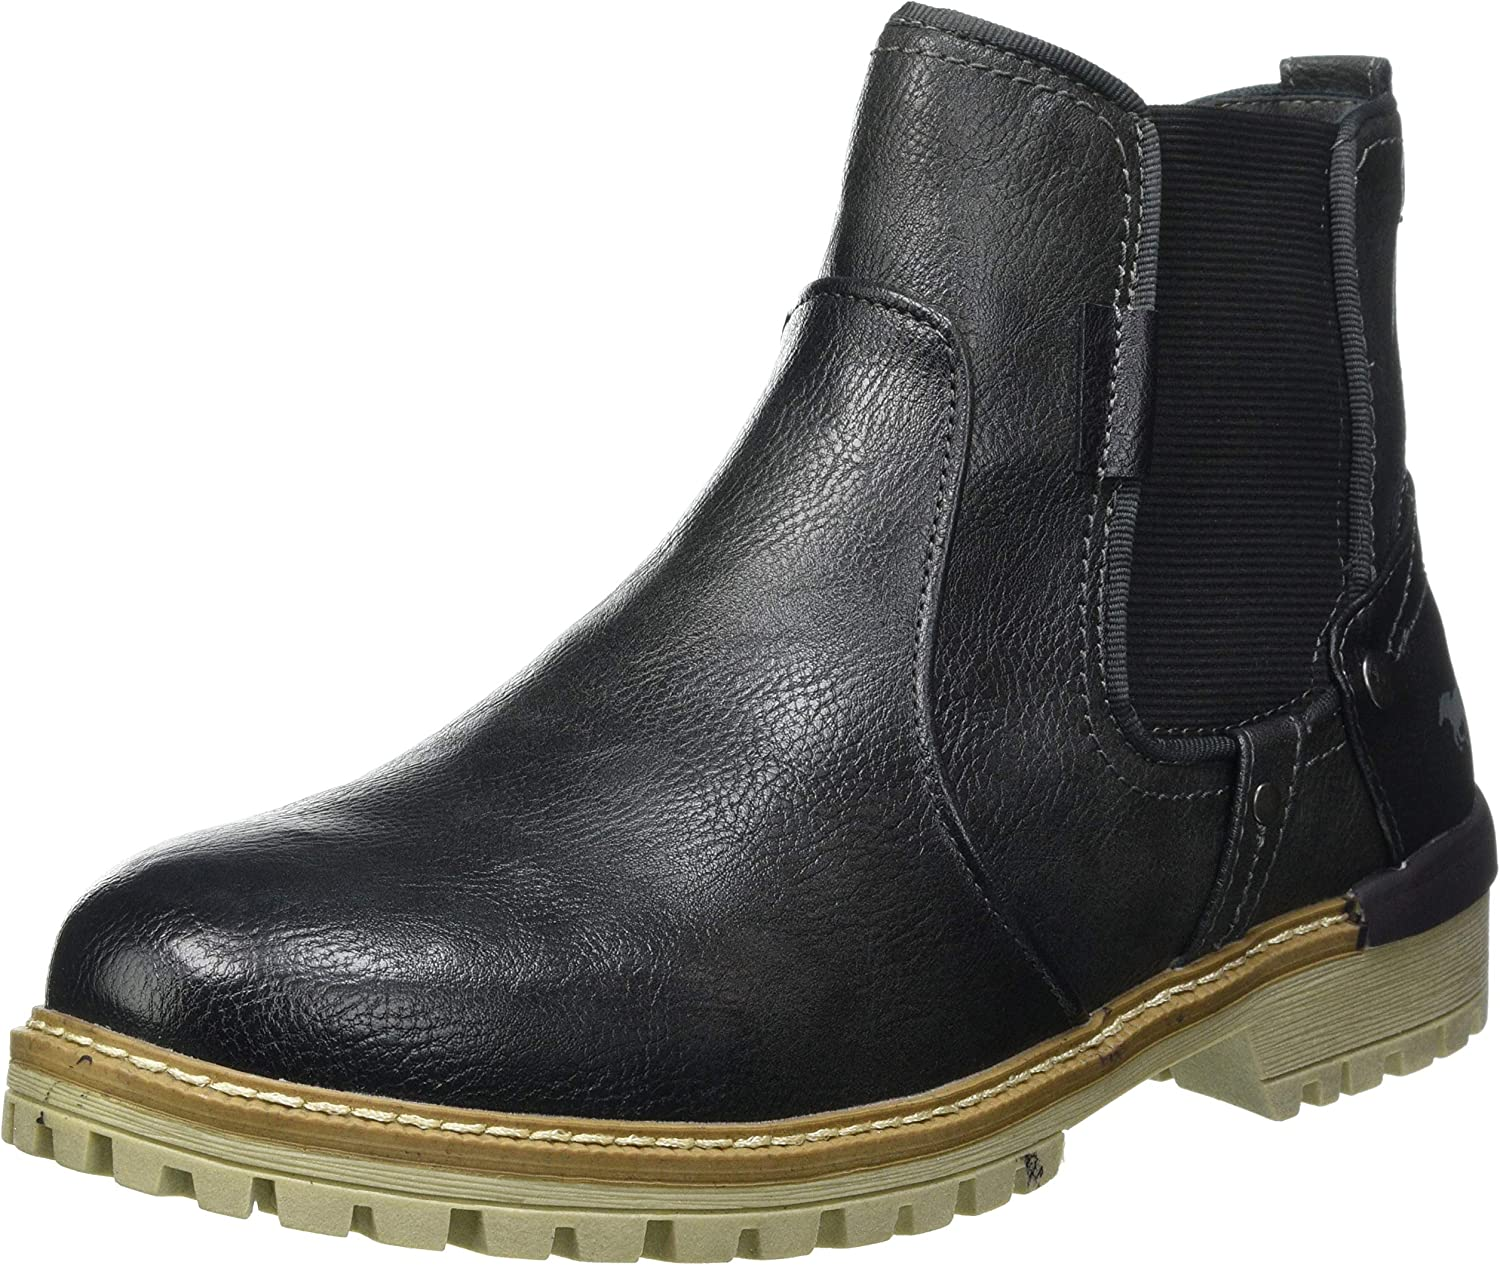 Mustang Popular Max 75% OFF products Men's Boot Chelsea